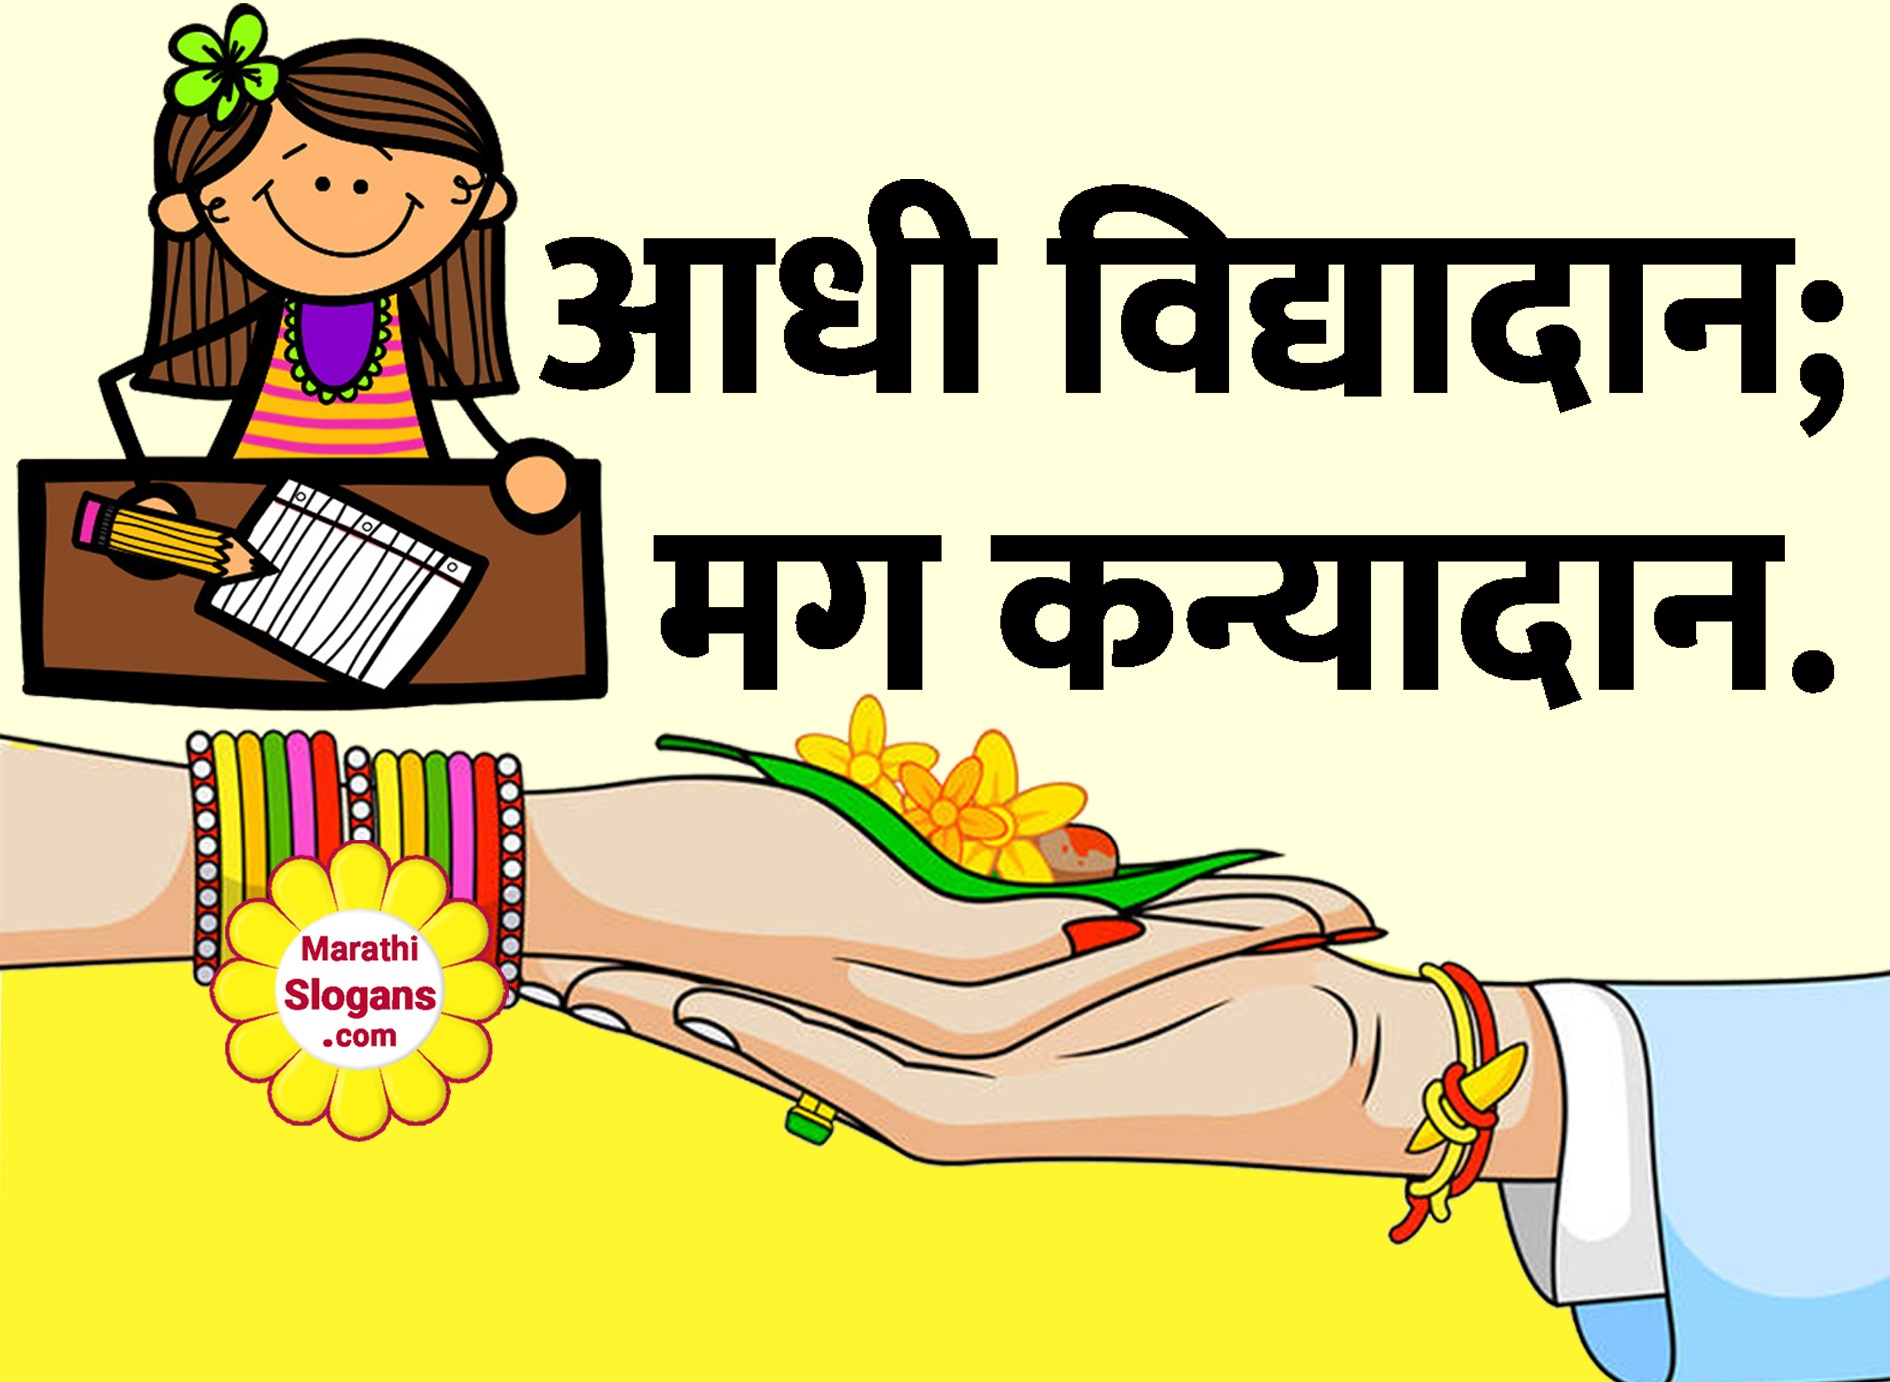 Marathi Slogans – Slogans on various topics in Marathi